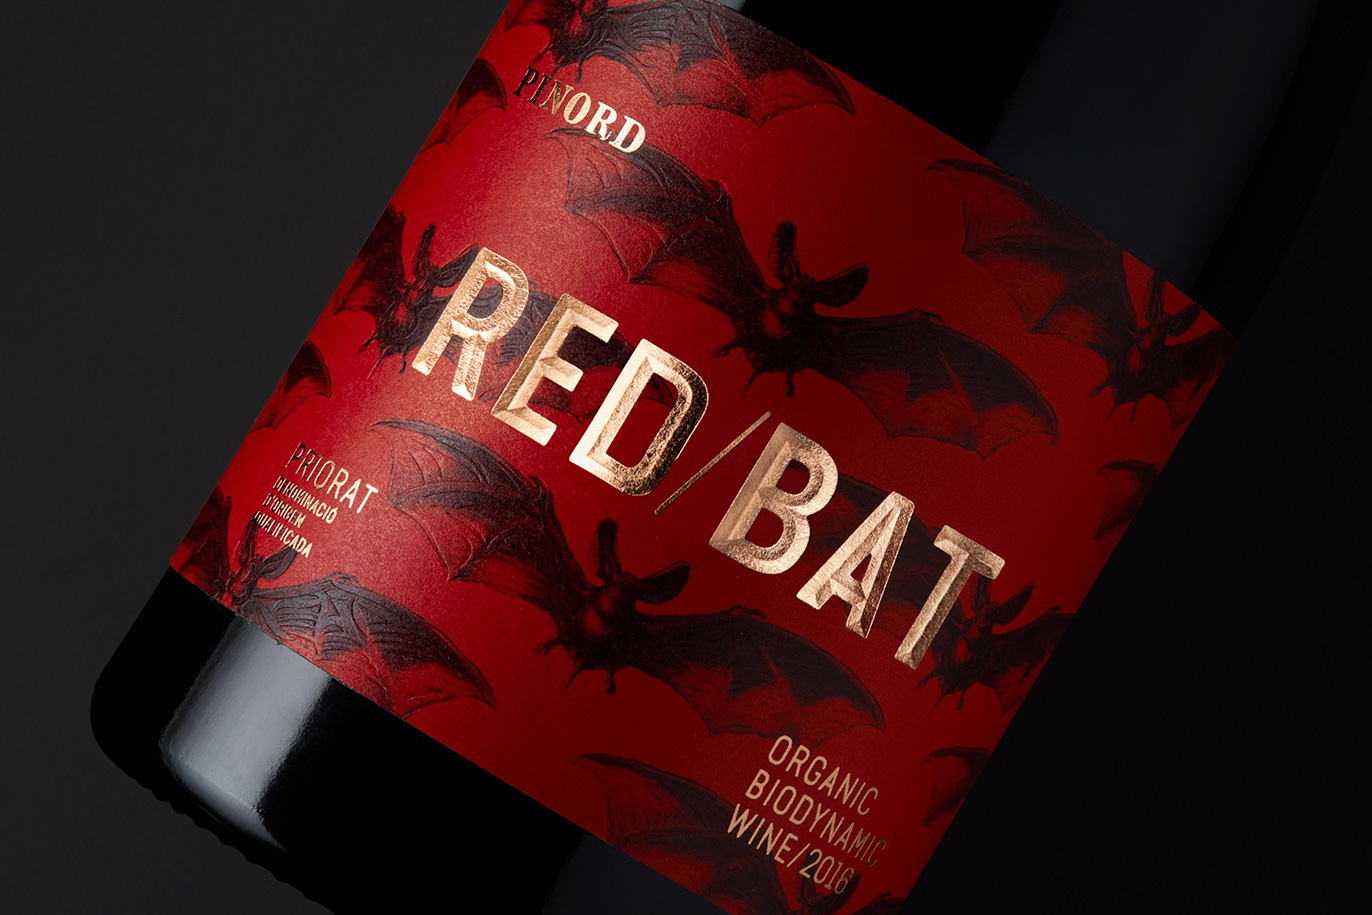 Pinord Red Bat red wine label design branding naming fast moving consumer goods FMCG packaging graphic design Vibranding